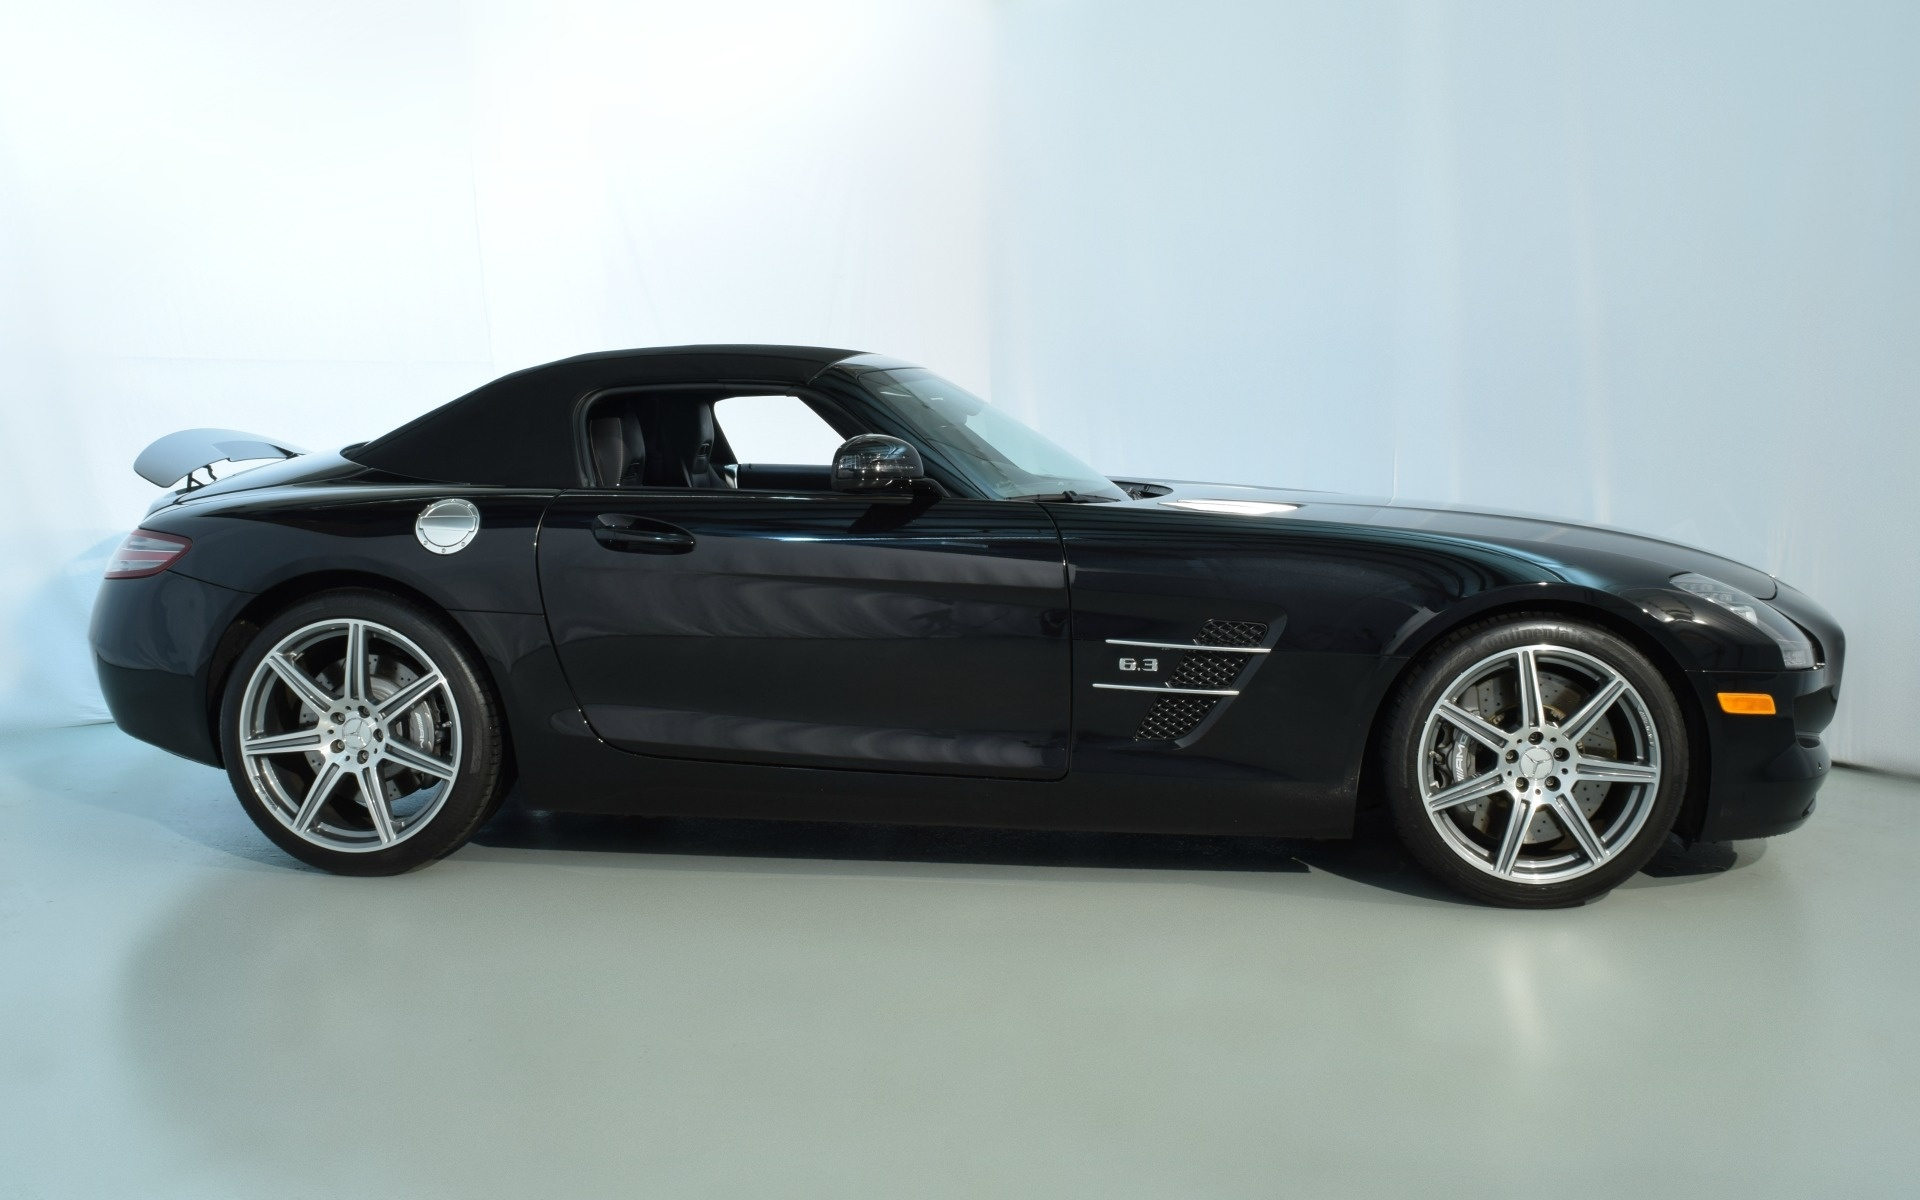 2012 mercedes benz sls amg sls amg for sale in norwell ma for Mercedes benz sls amg price 2012